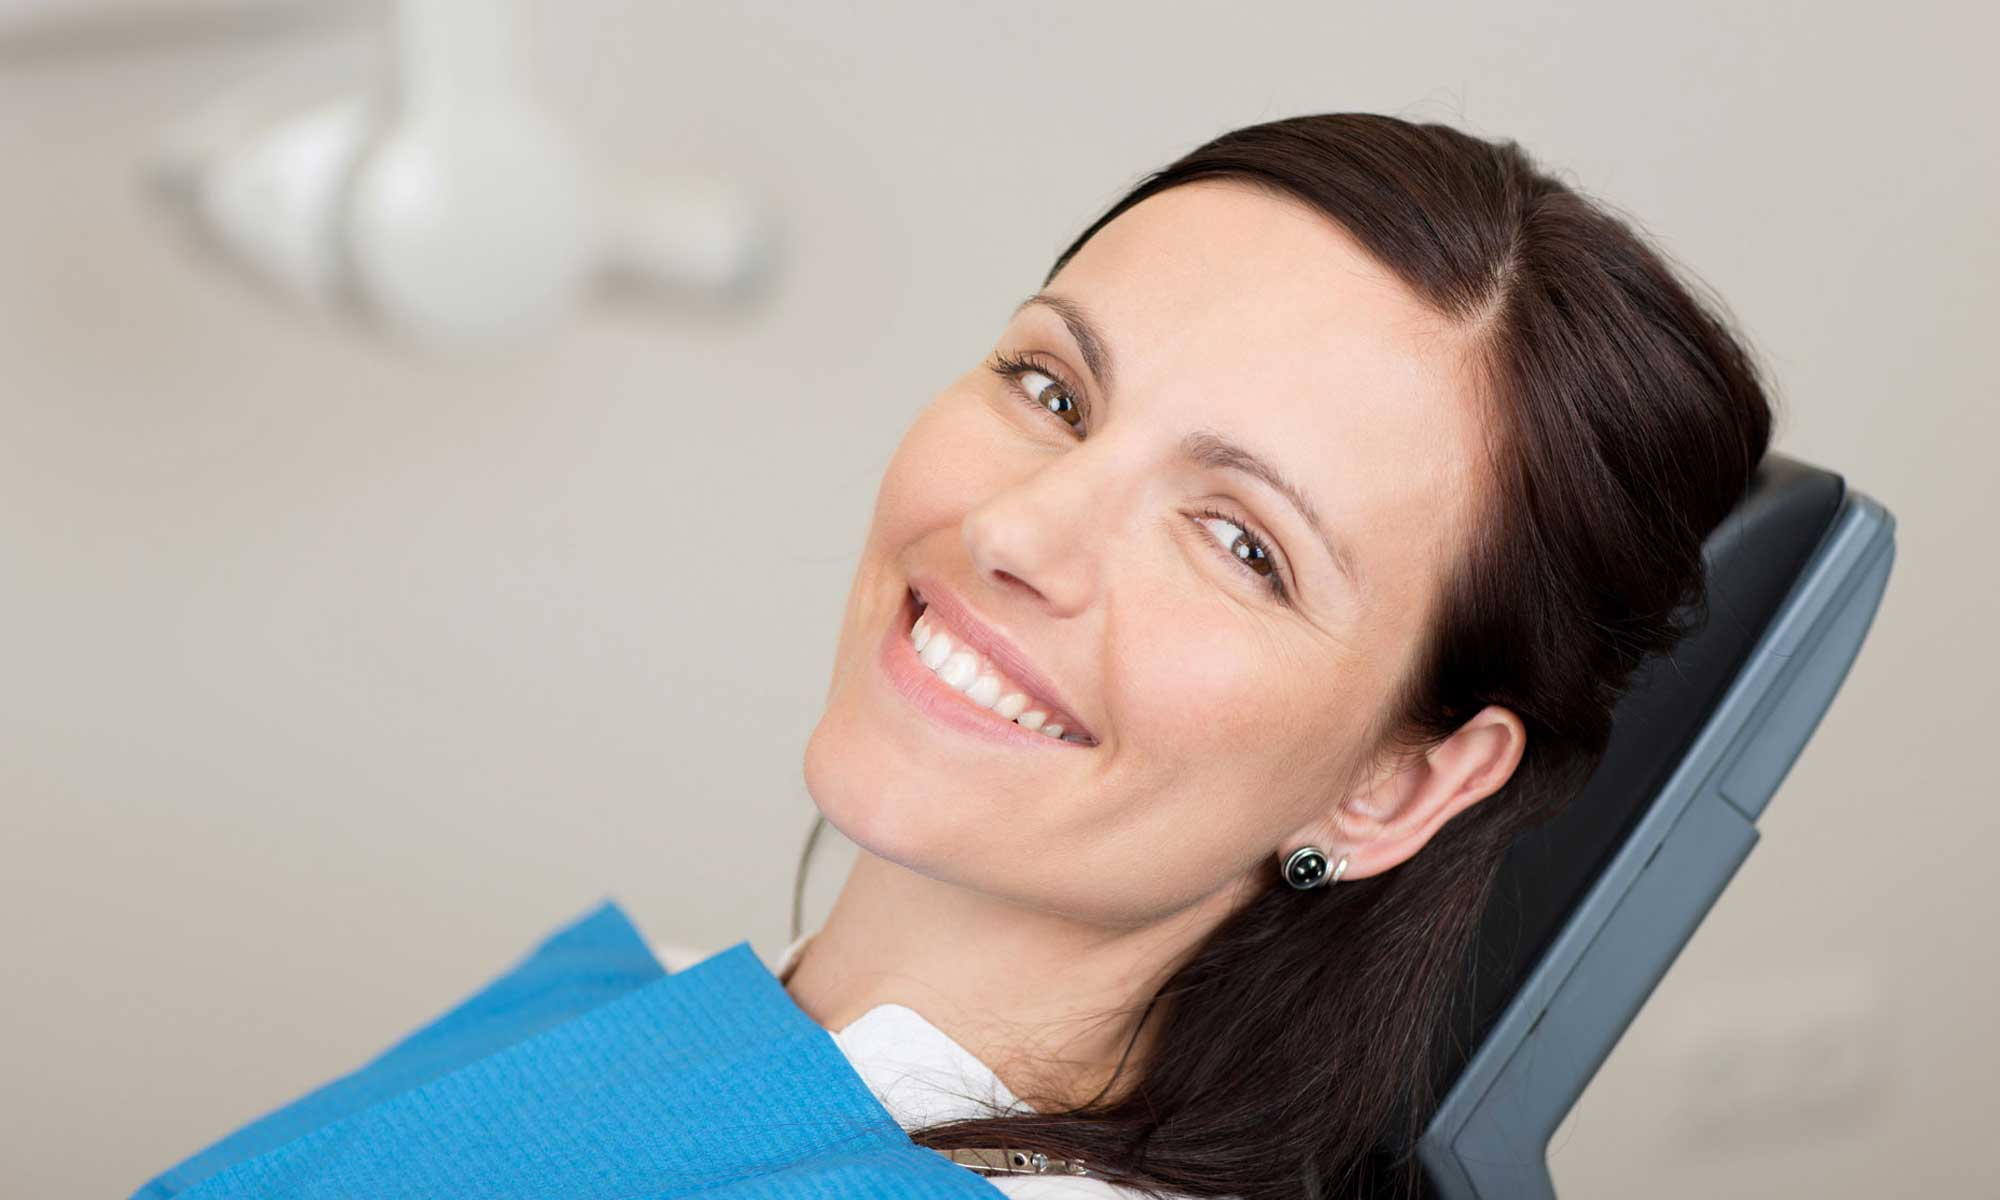 Thirroul Dental Studio Dentist North Wollongong Dentist 0304 Extraction